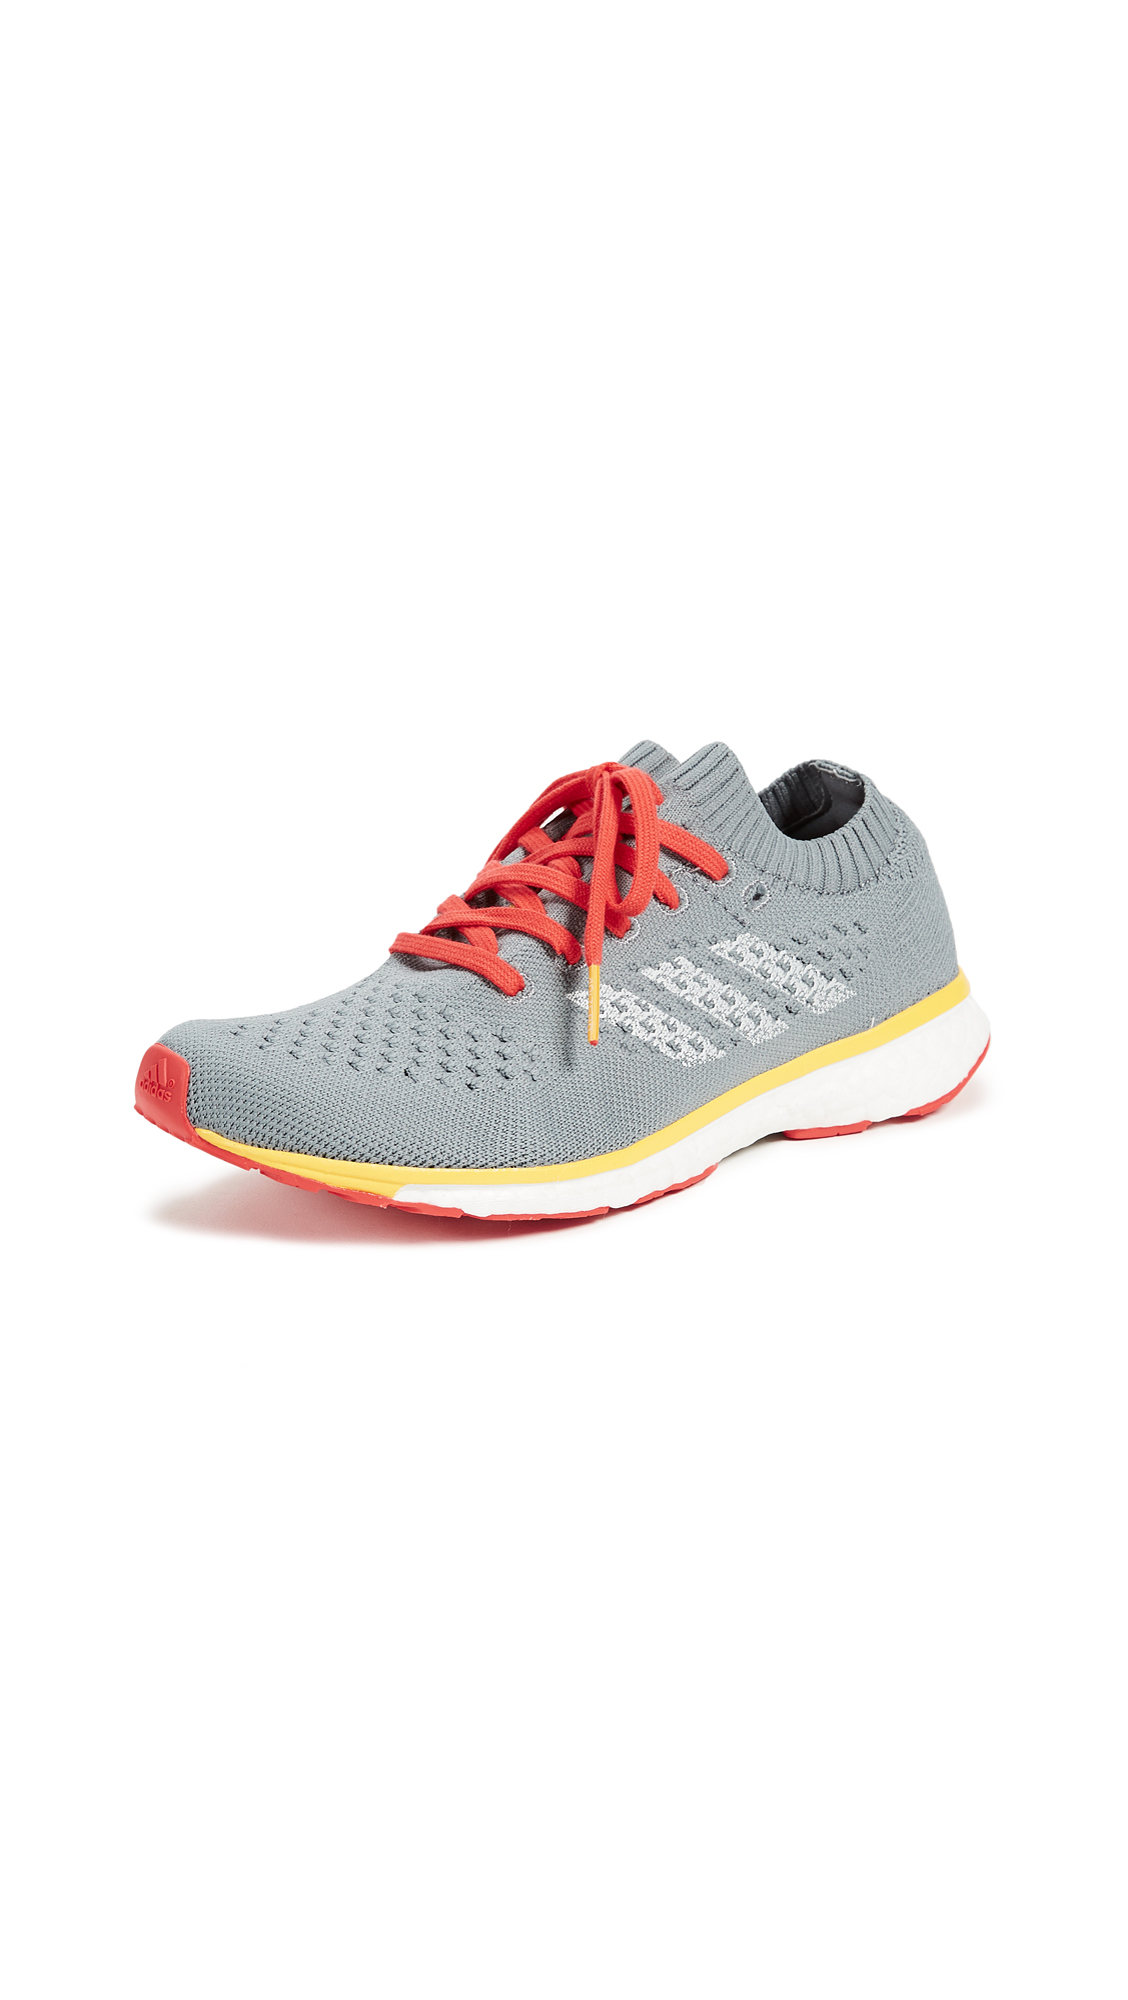 Adidas adiZero Prime Boost KOLOR Sneakers - Grey/Grey/Yellow